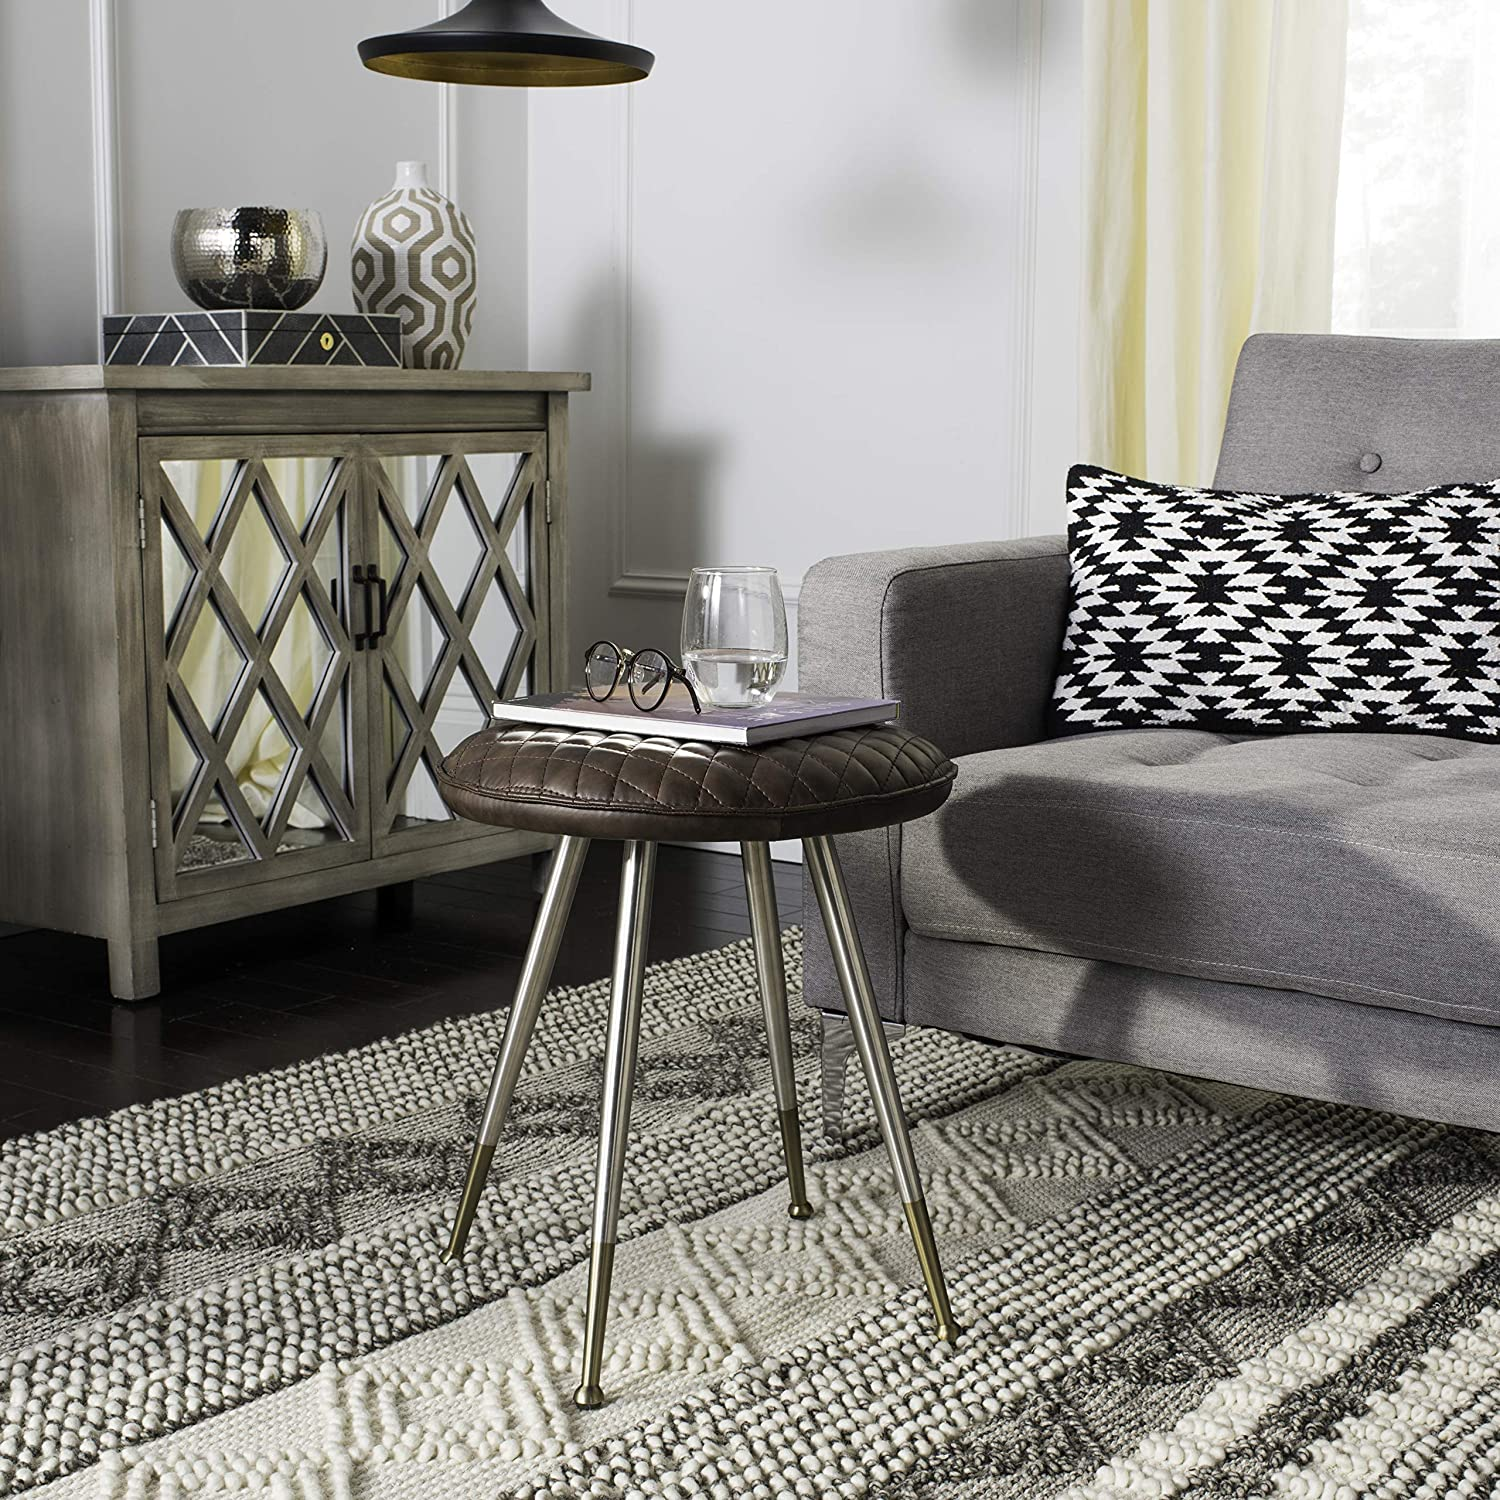 Safavieh American Homes Collection Brinley Mid-Century Modern Dark Brown and Silver 30-inch Stool